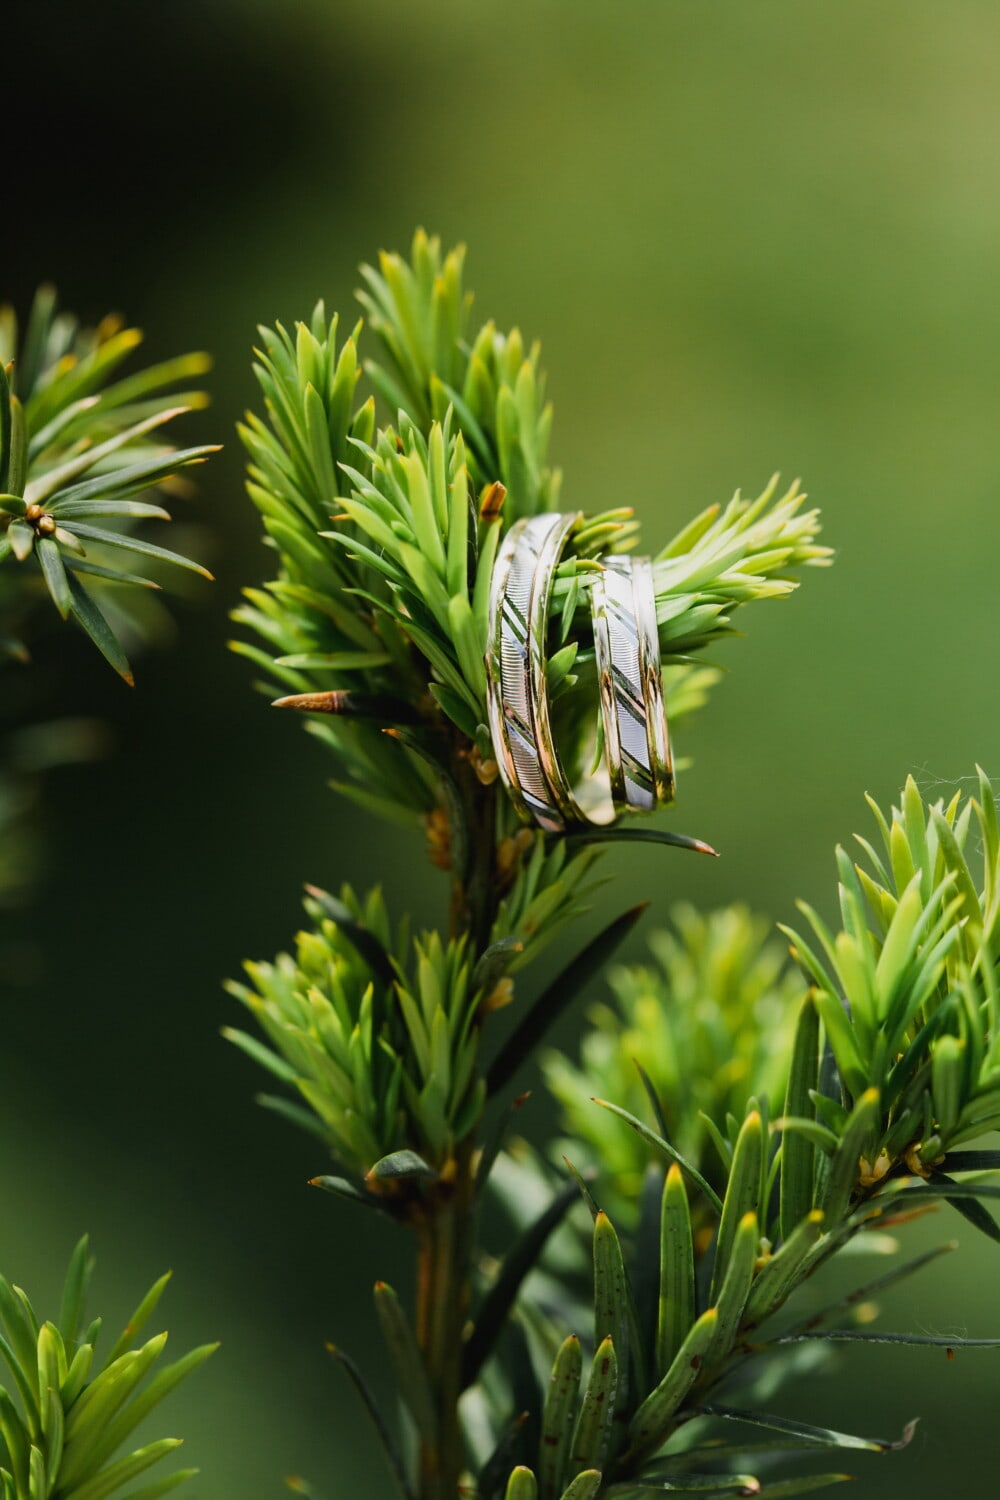 conifers, wedding ring, hanging, rings, golden shine, blur, plant, herb, evergreen, nature